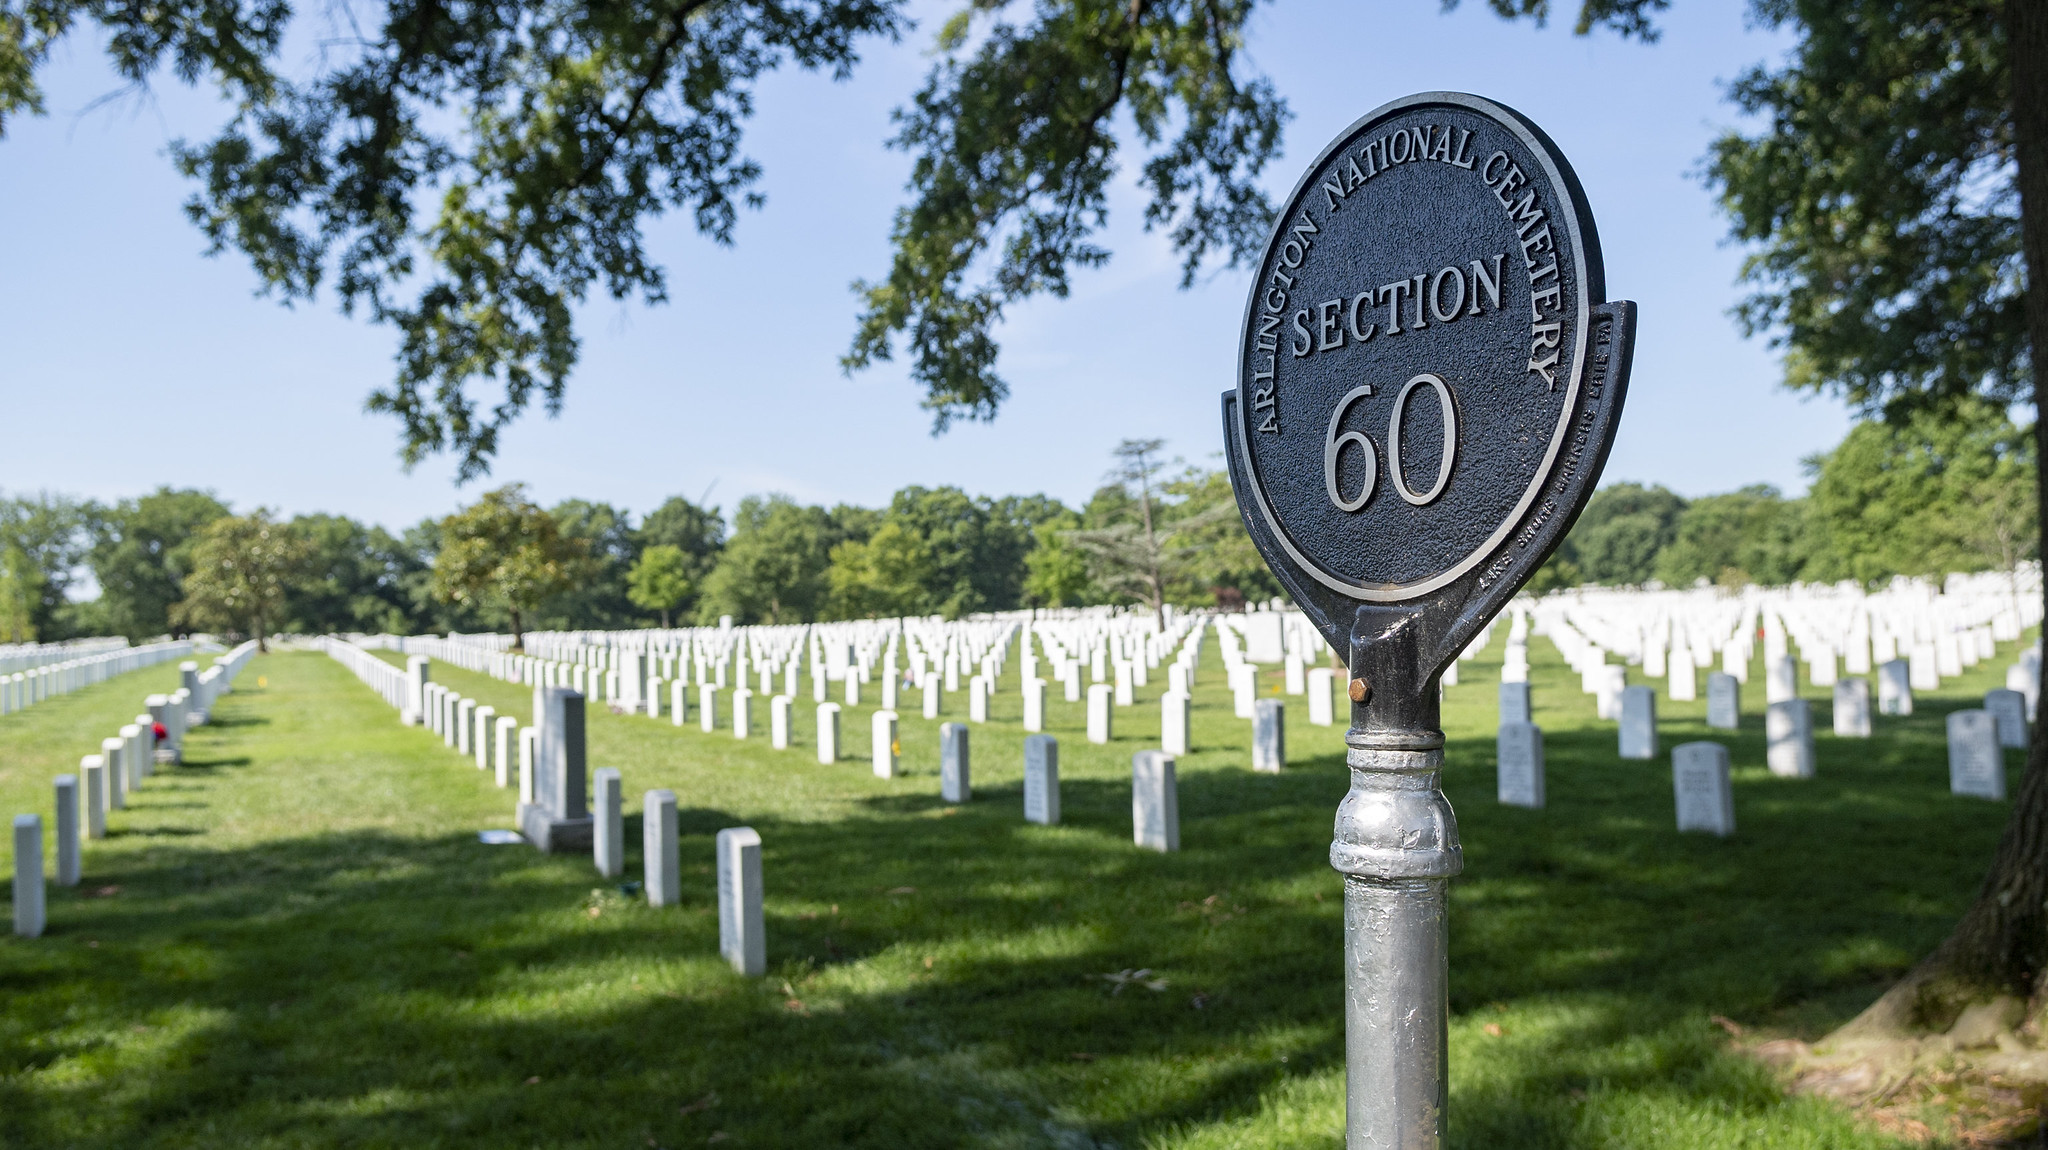 Section 60 of Arlington National Cemetery, where many veterans of recent wars are buried